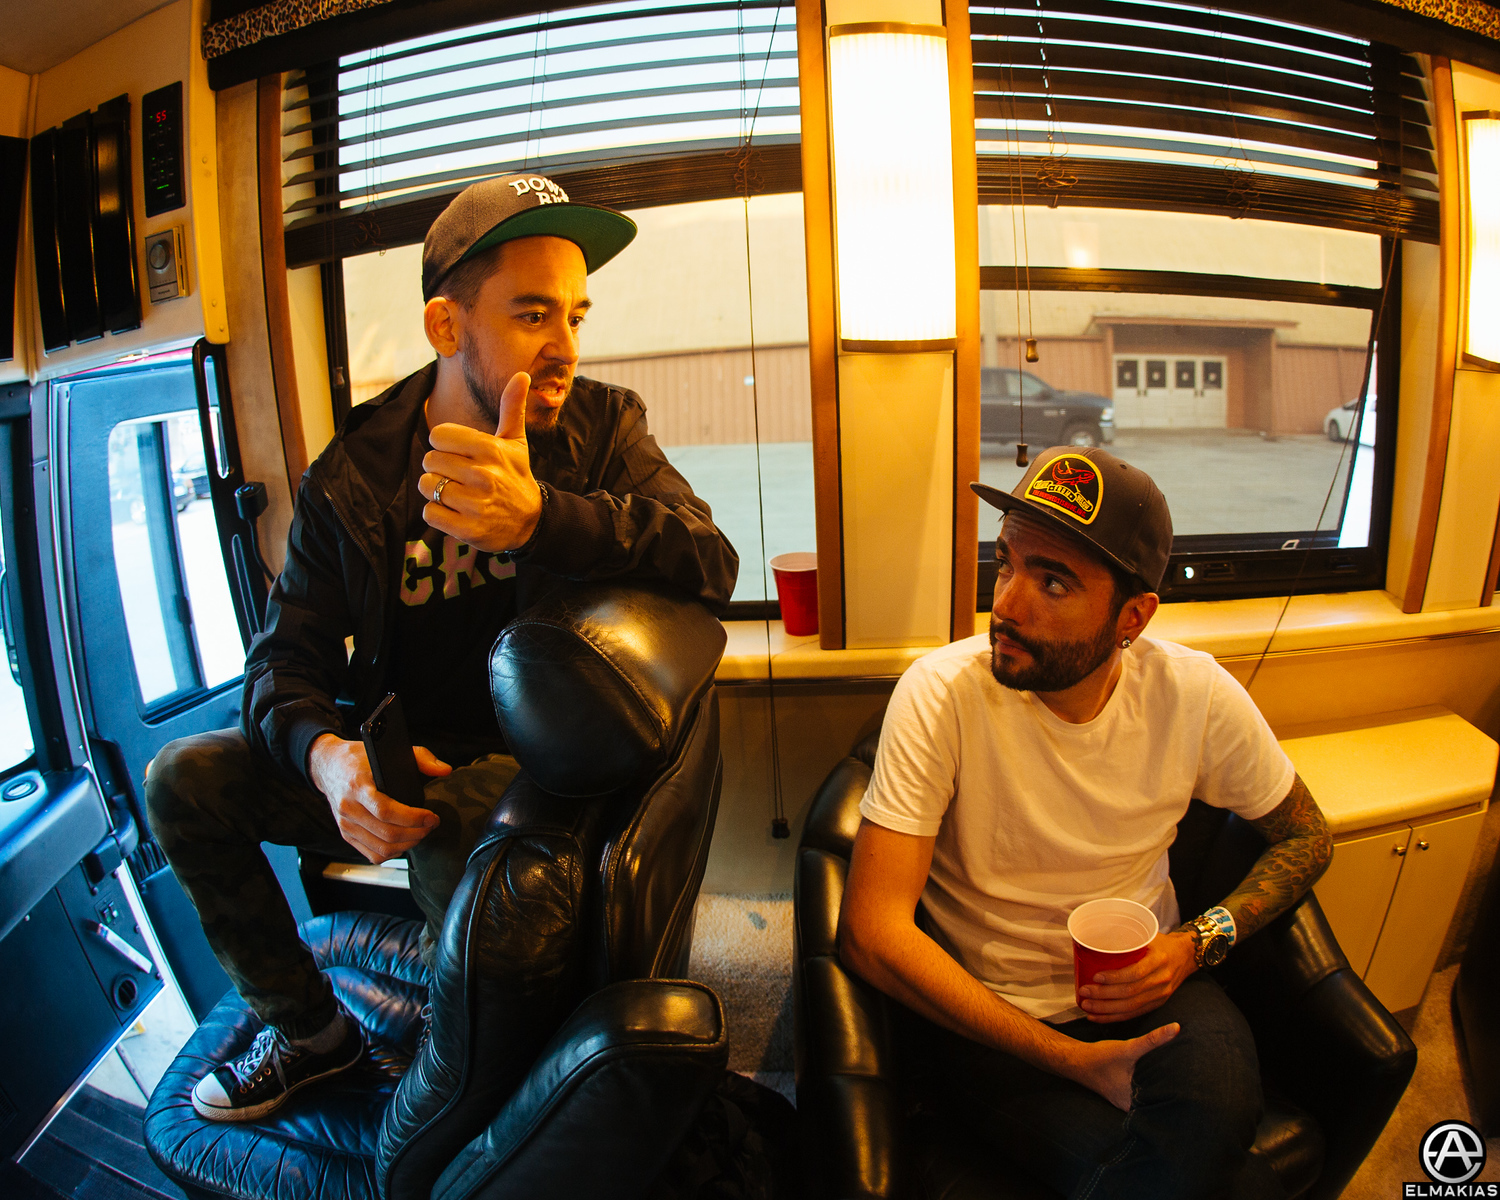 Mike and Jeremy talking on the bus later that night